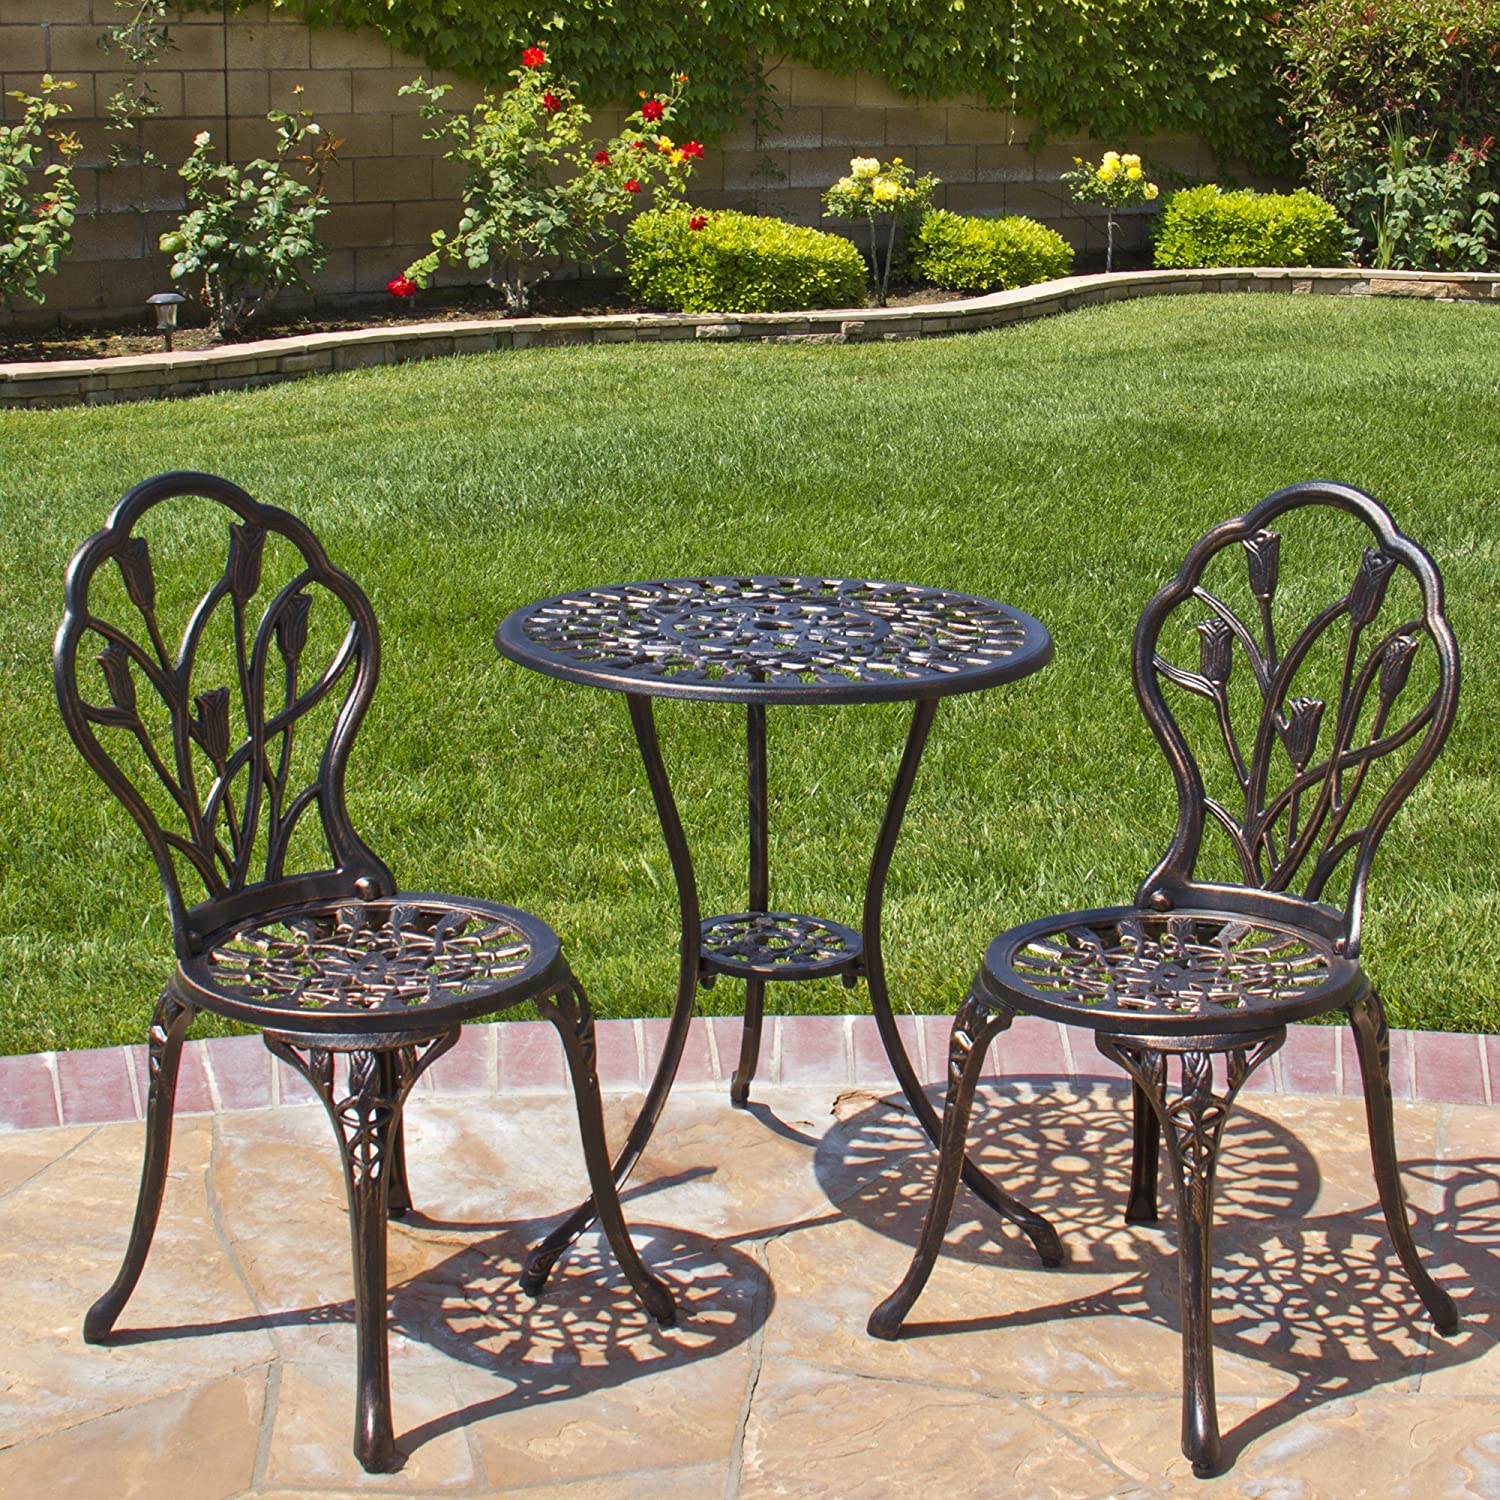 amazoncom best choice products outdoor patio furniture tulip design cast aluminum 3 piece bistro set in antique copper patio lawn garden